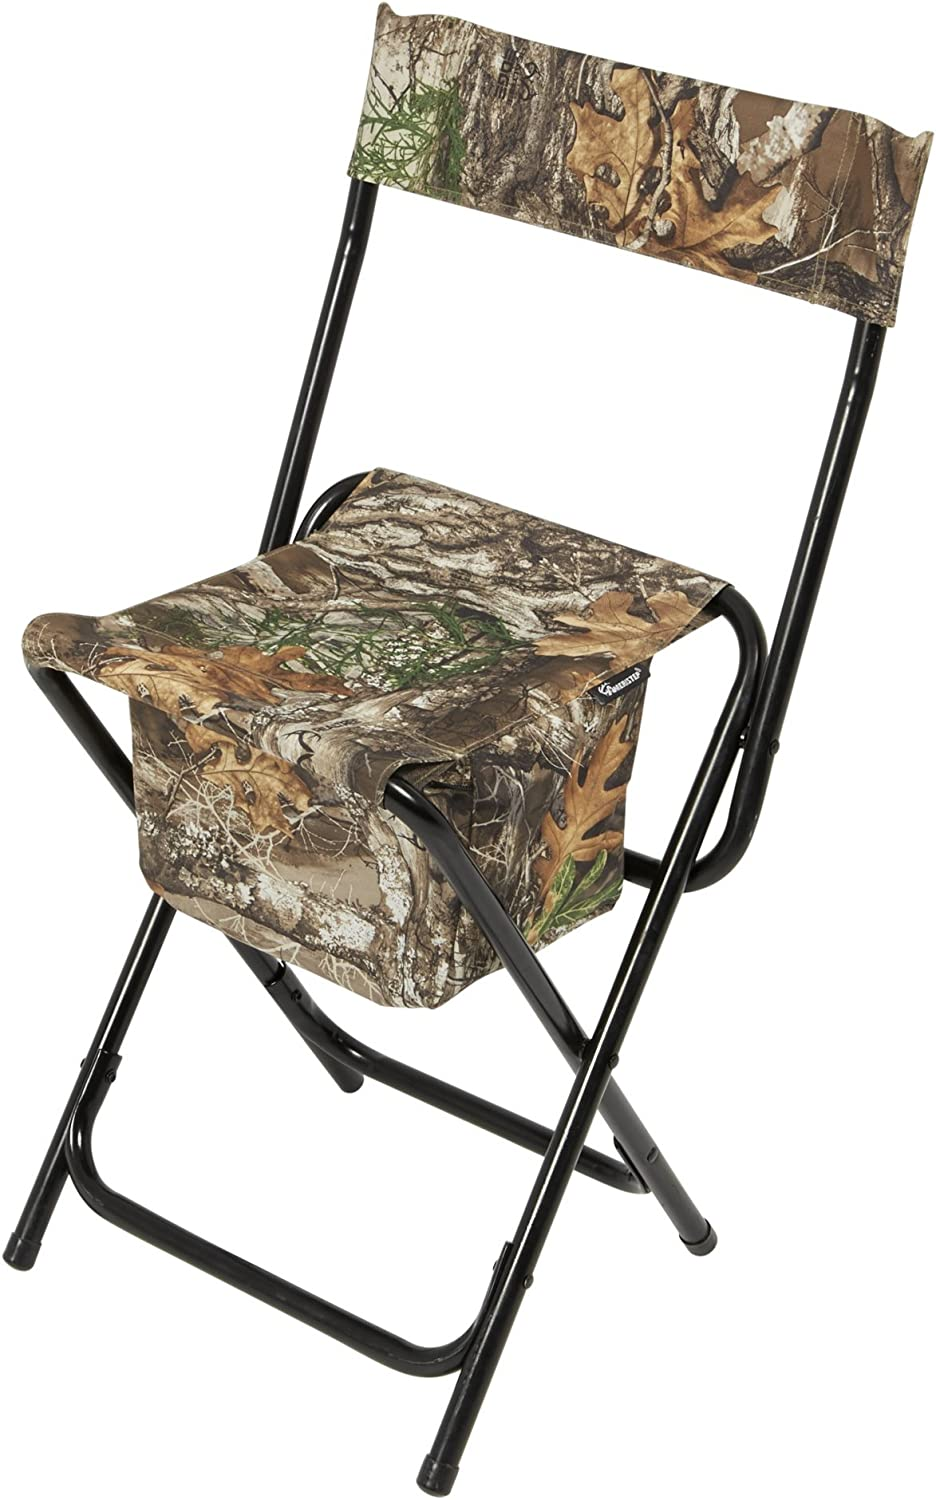 Top 10 Best Hunting chair that swivels 9